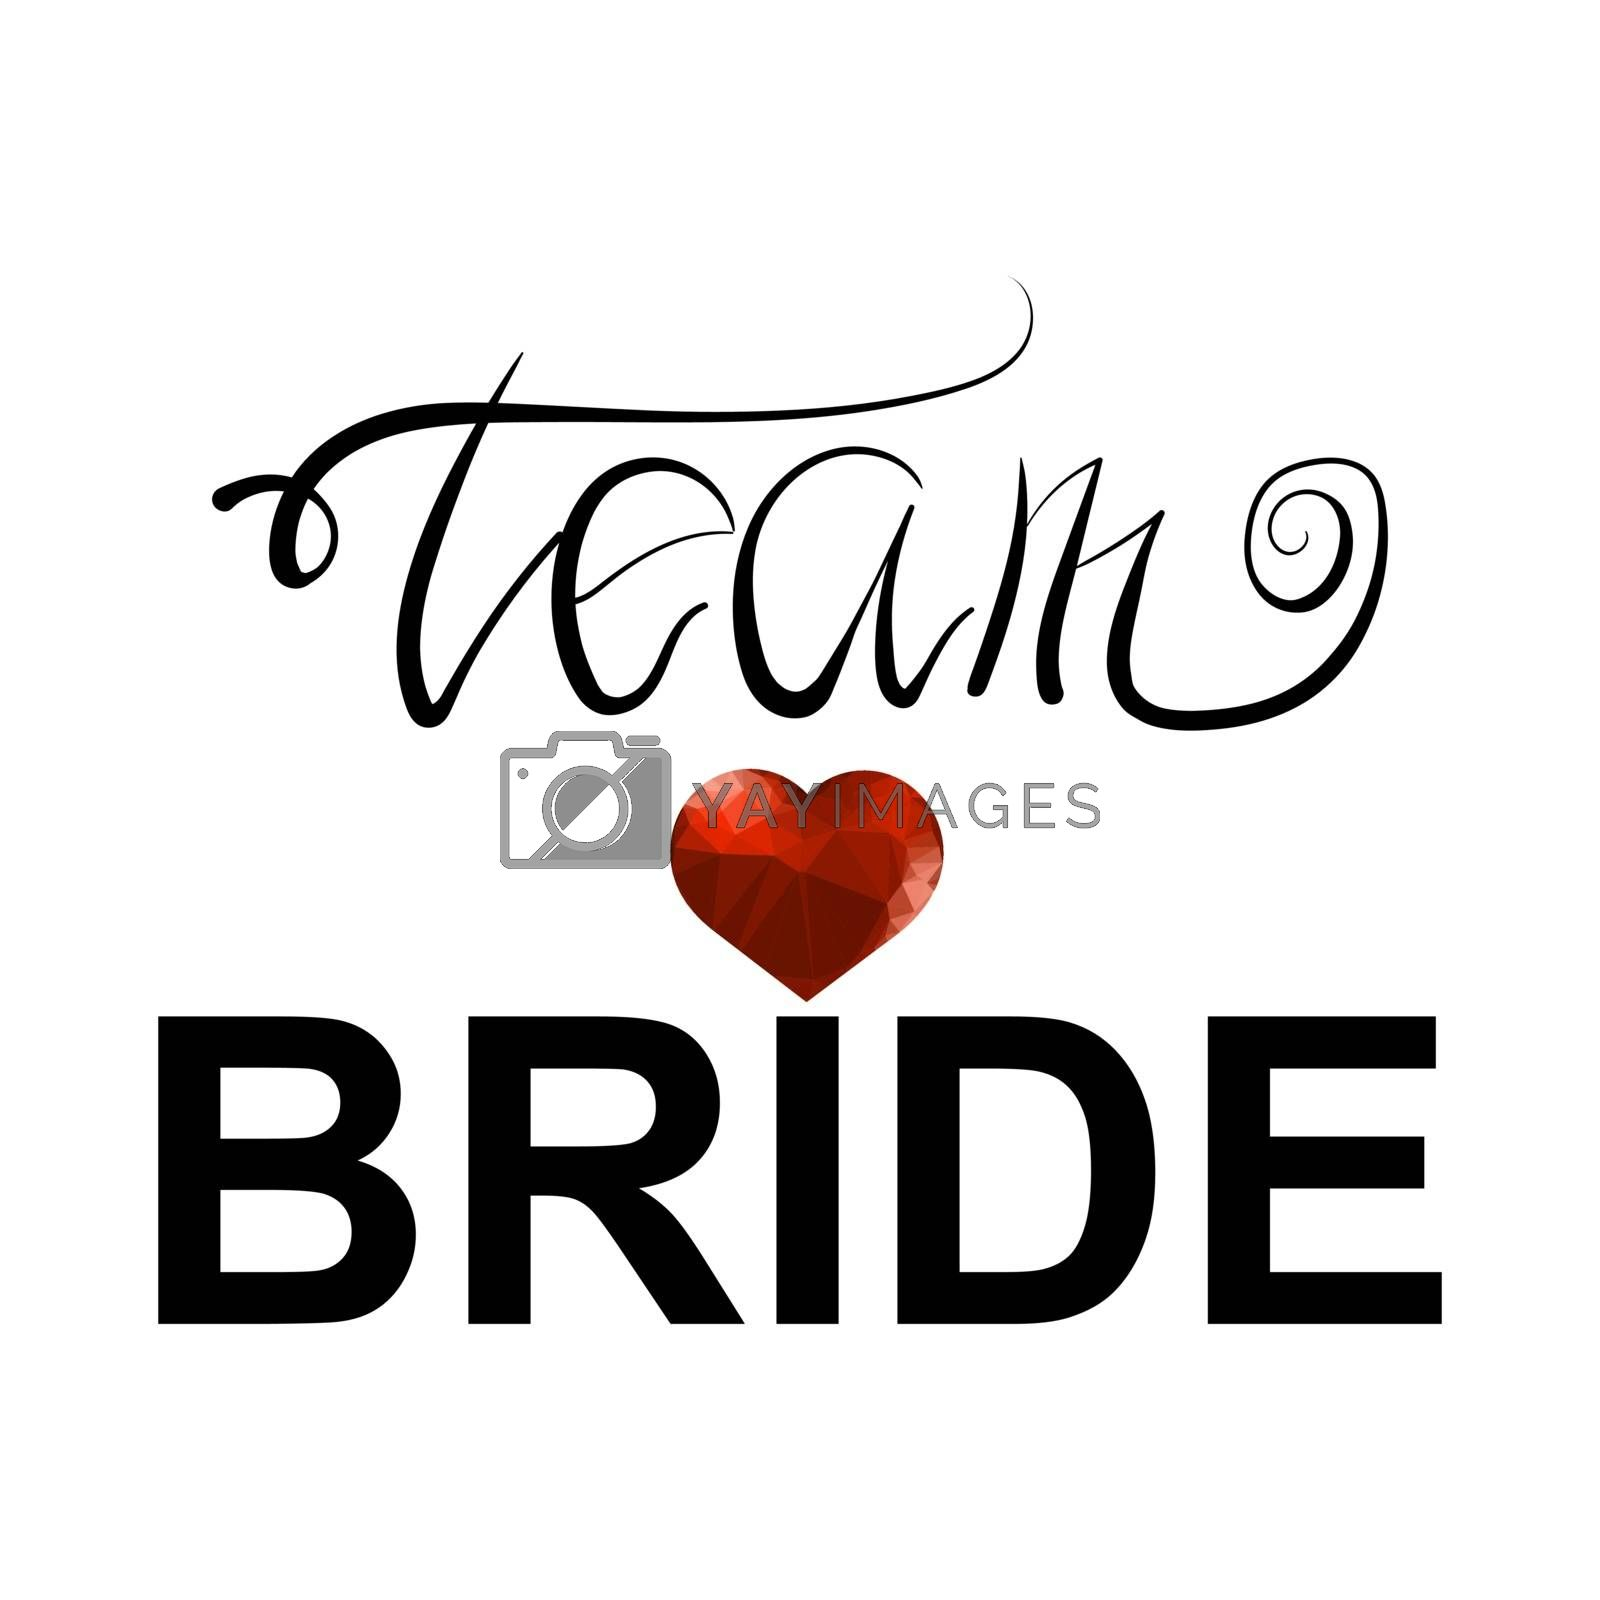 Bachelorette Party. Team Bride Text and Red Polygonal Heart on White Background. Hand Written Calligraphy Card for Bridal Shower or Hen Party. Wedding Design.